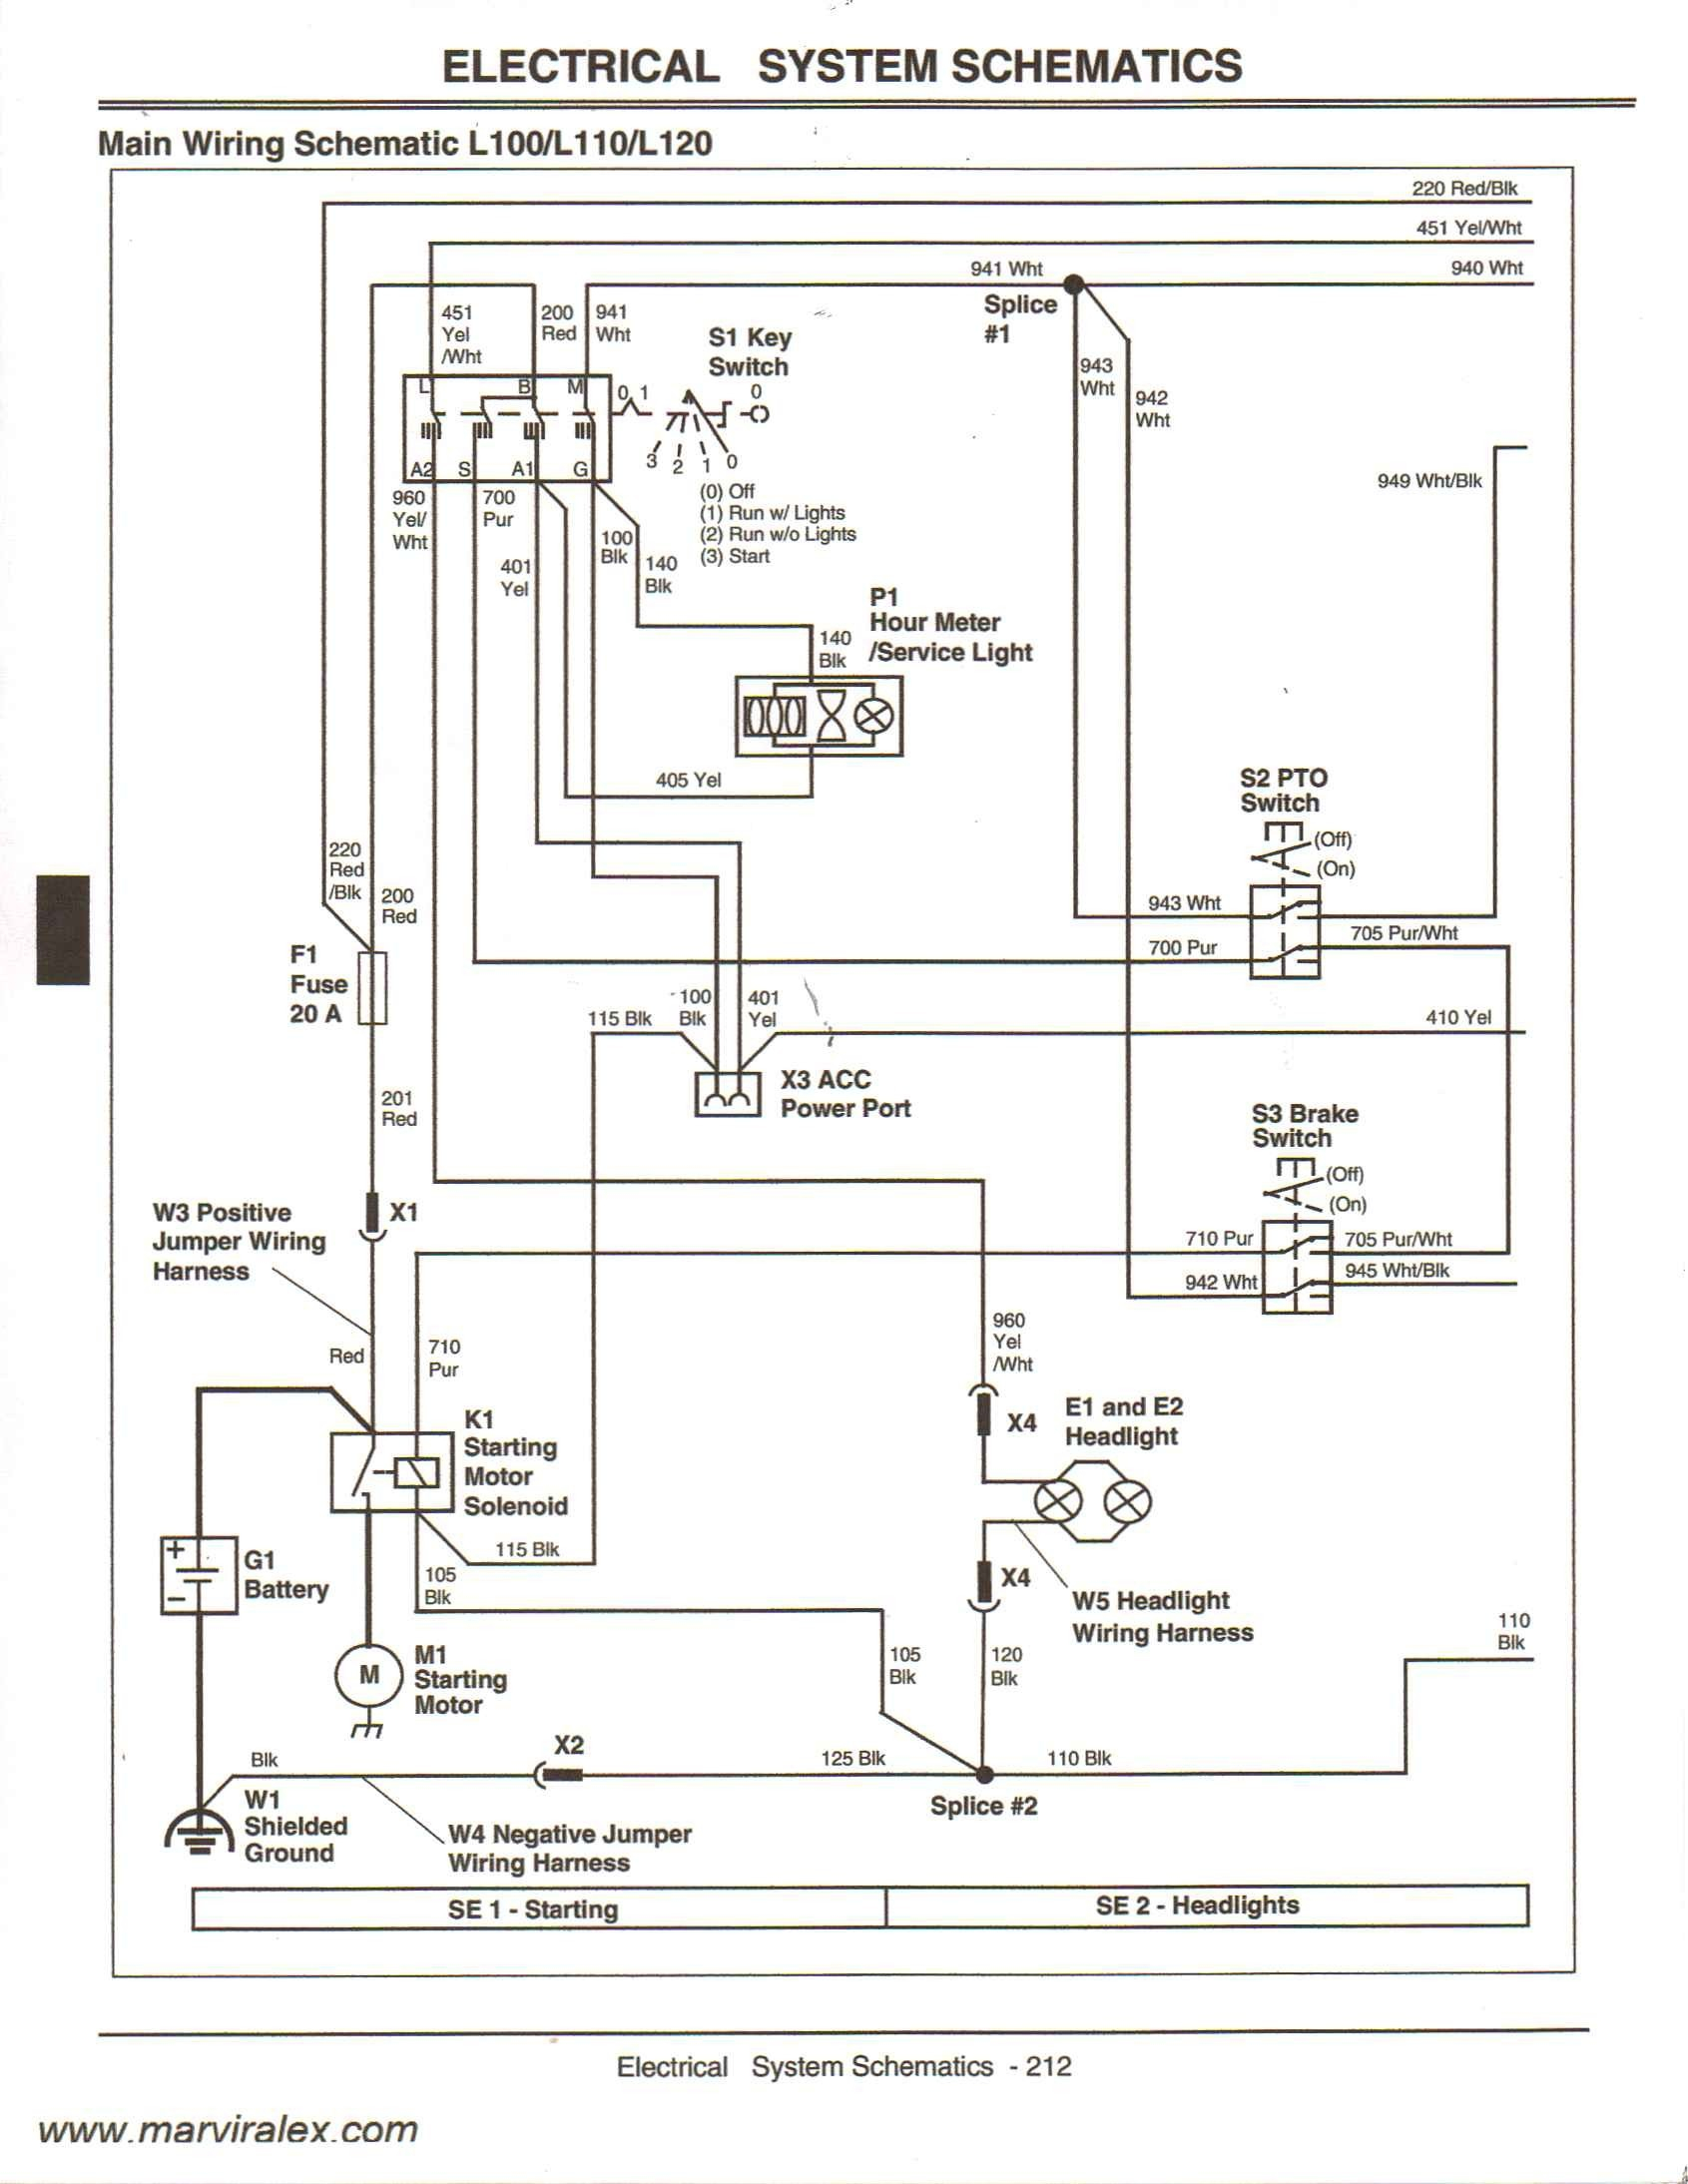 wiring diagram for 720 john deere tractor la145 wiring diagram dat wiring diagrams  la145 wiring diagram dat wiring diagrams